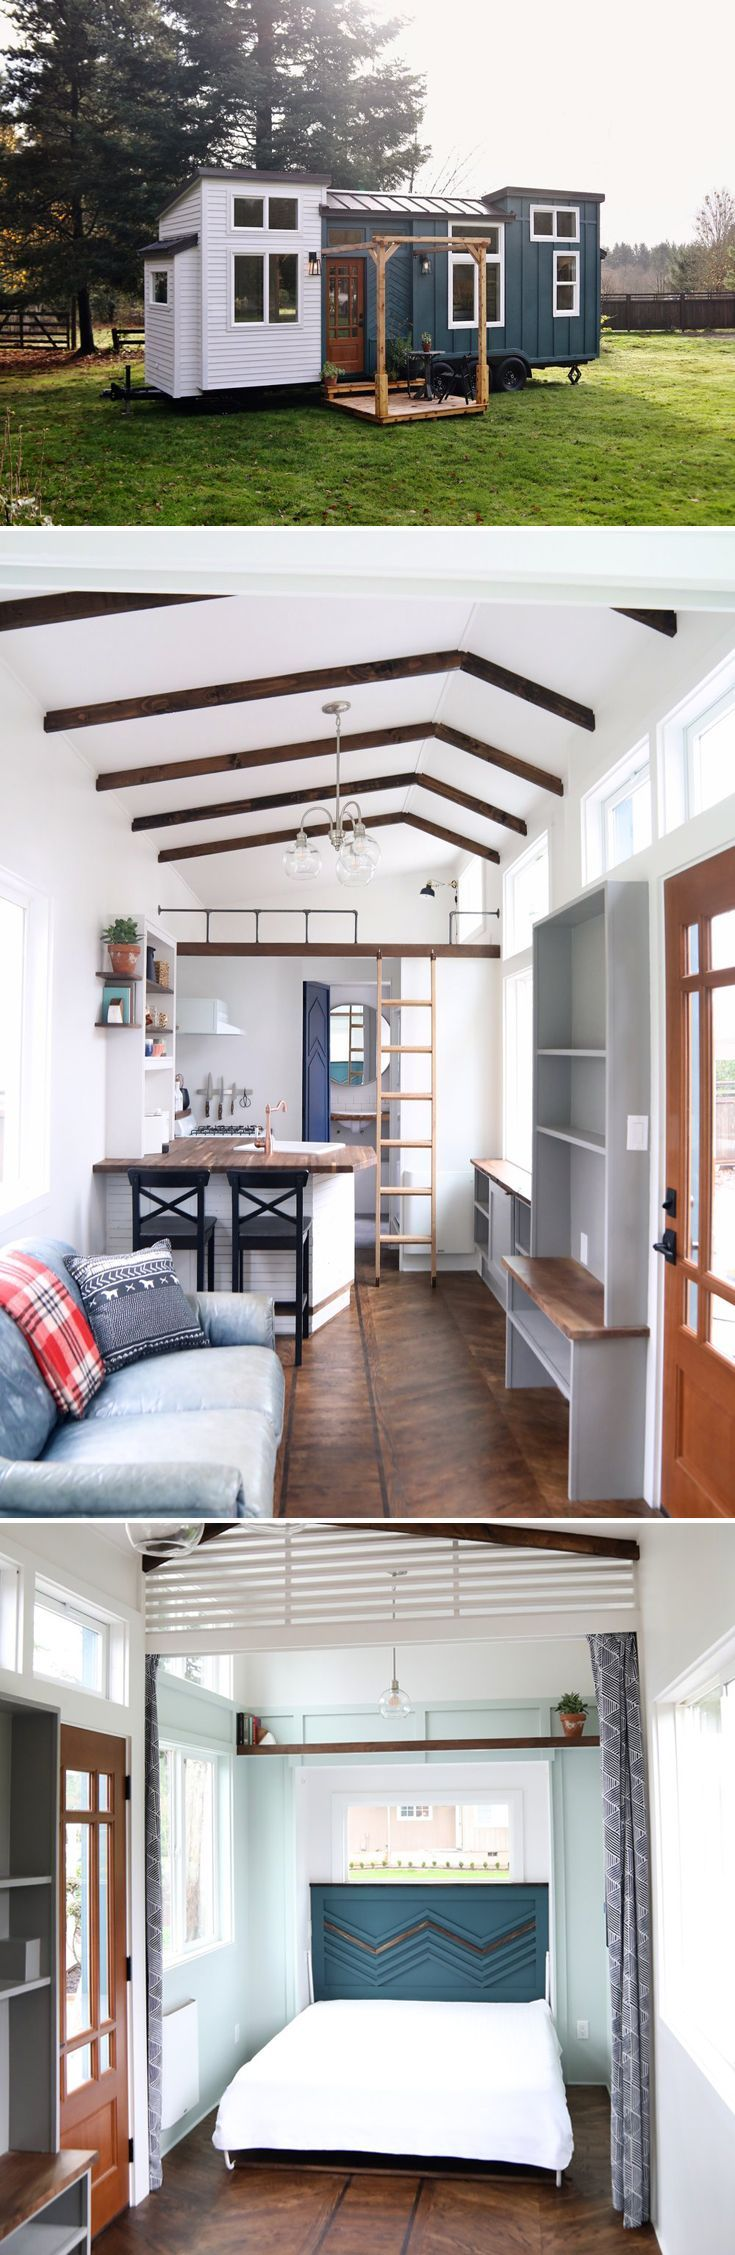 Tiny Home Designs: Pacific Getaway By Handcrafted Movement